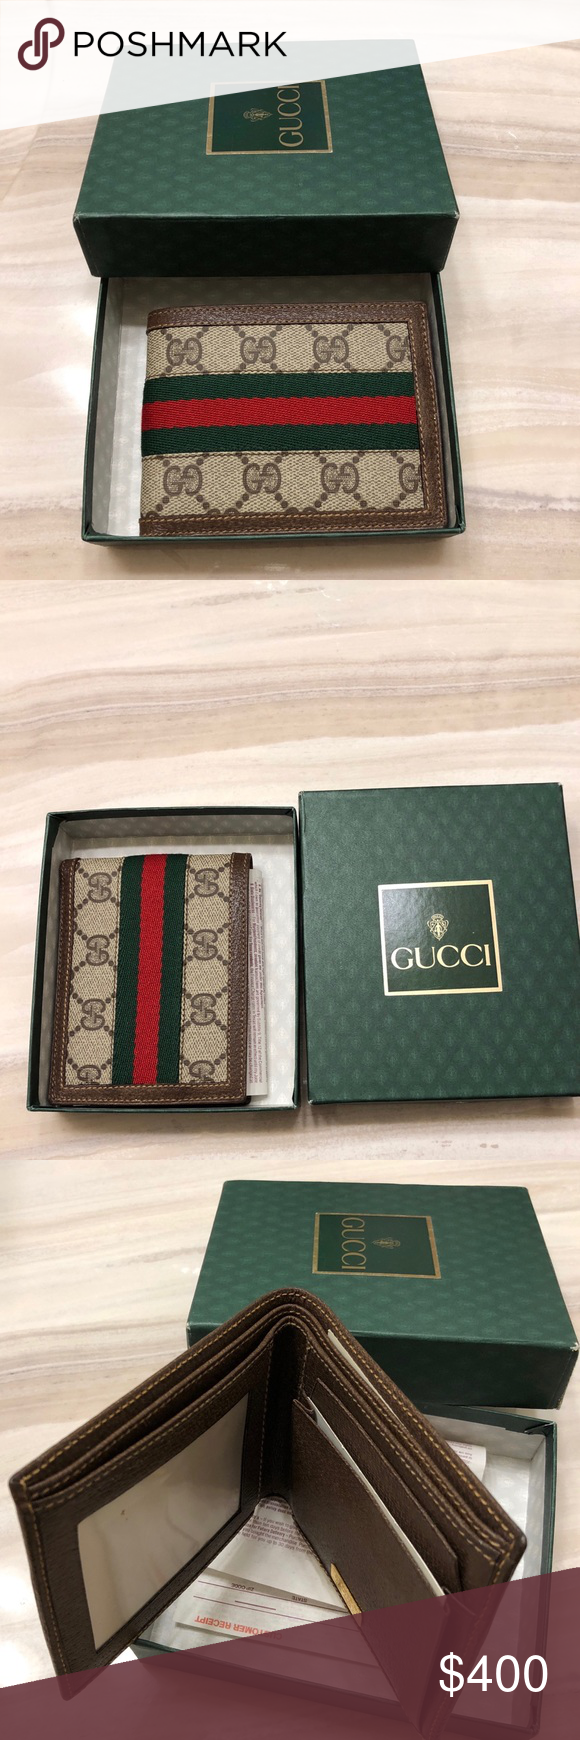 238118767e6 100% Authentic Mens Gucci Wallet RARE Vintage 100% Authentic - RARE and  extremely difficult